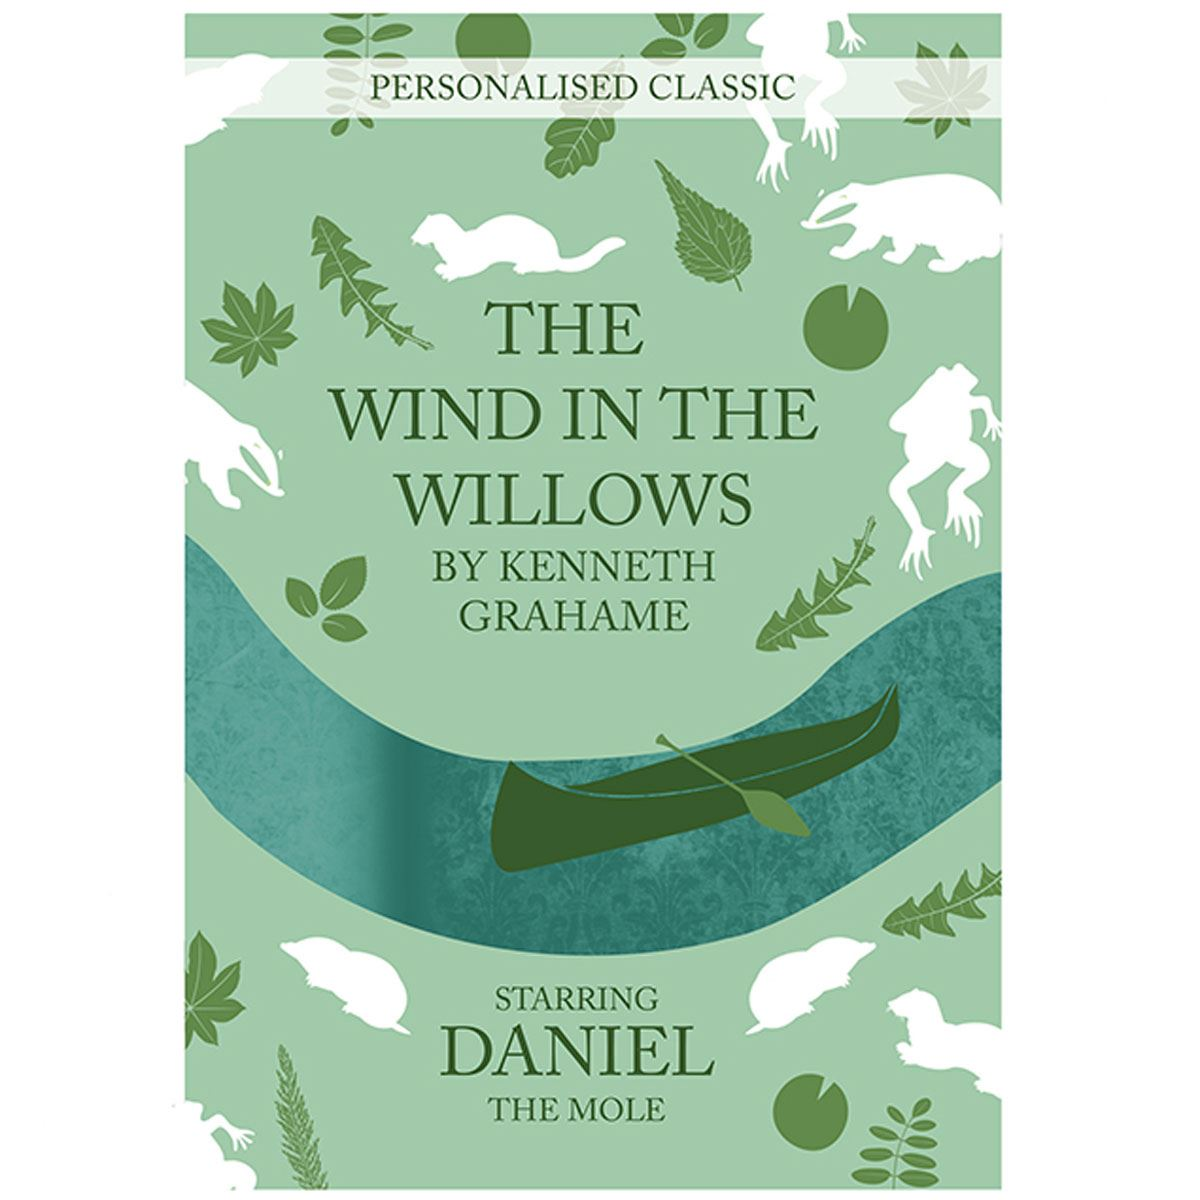 wind in the willows essay Read this literature essay and over 88,000 other research documents the wind in the willows the wind in the willows by kenneth grahame has challenged the reader to see the world and individuals in different.